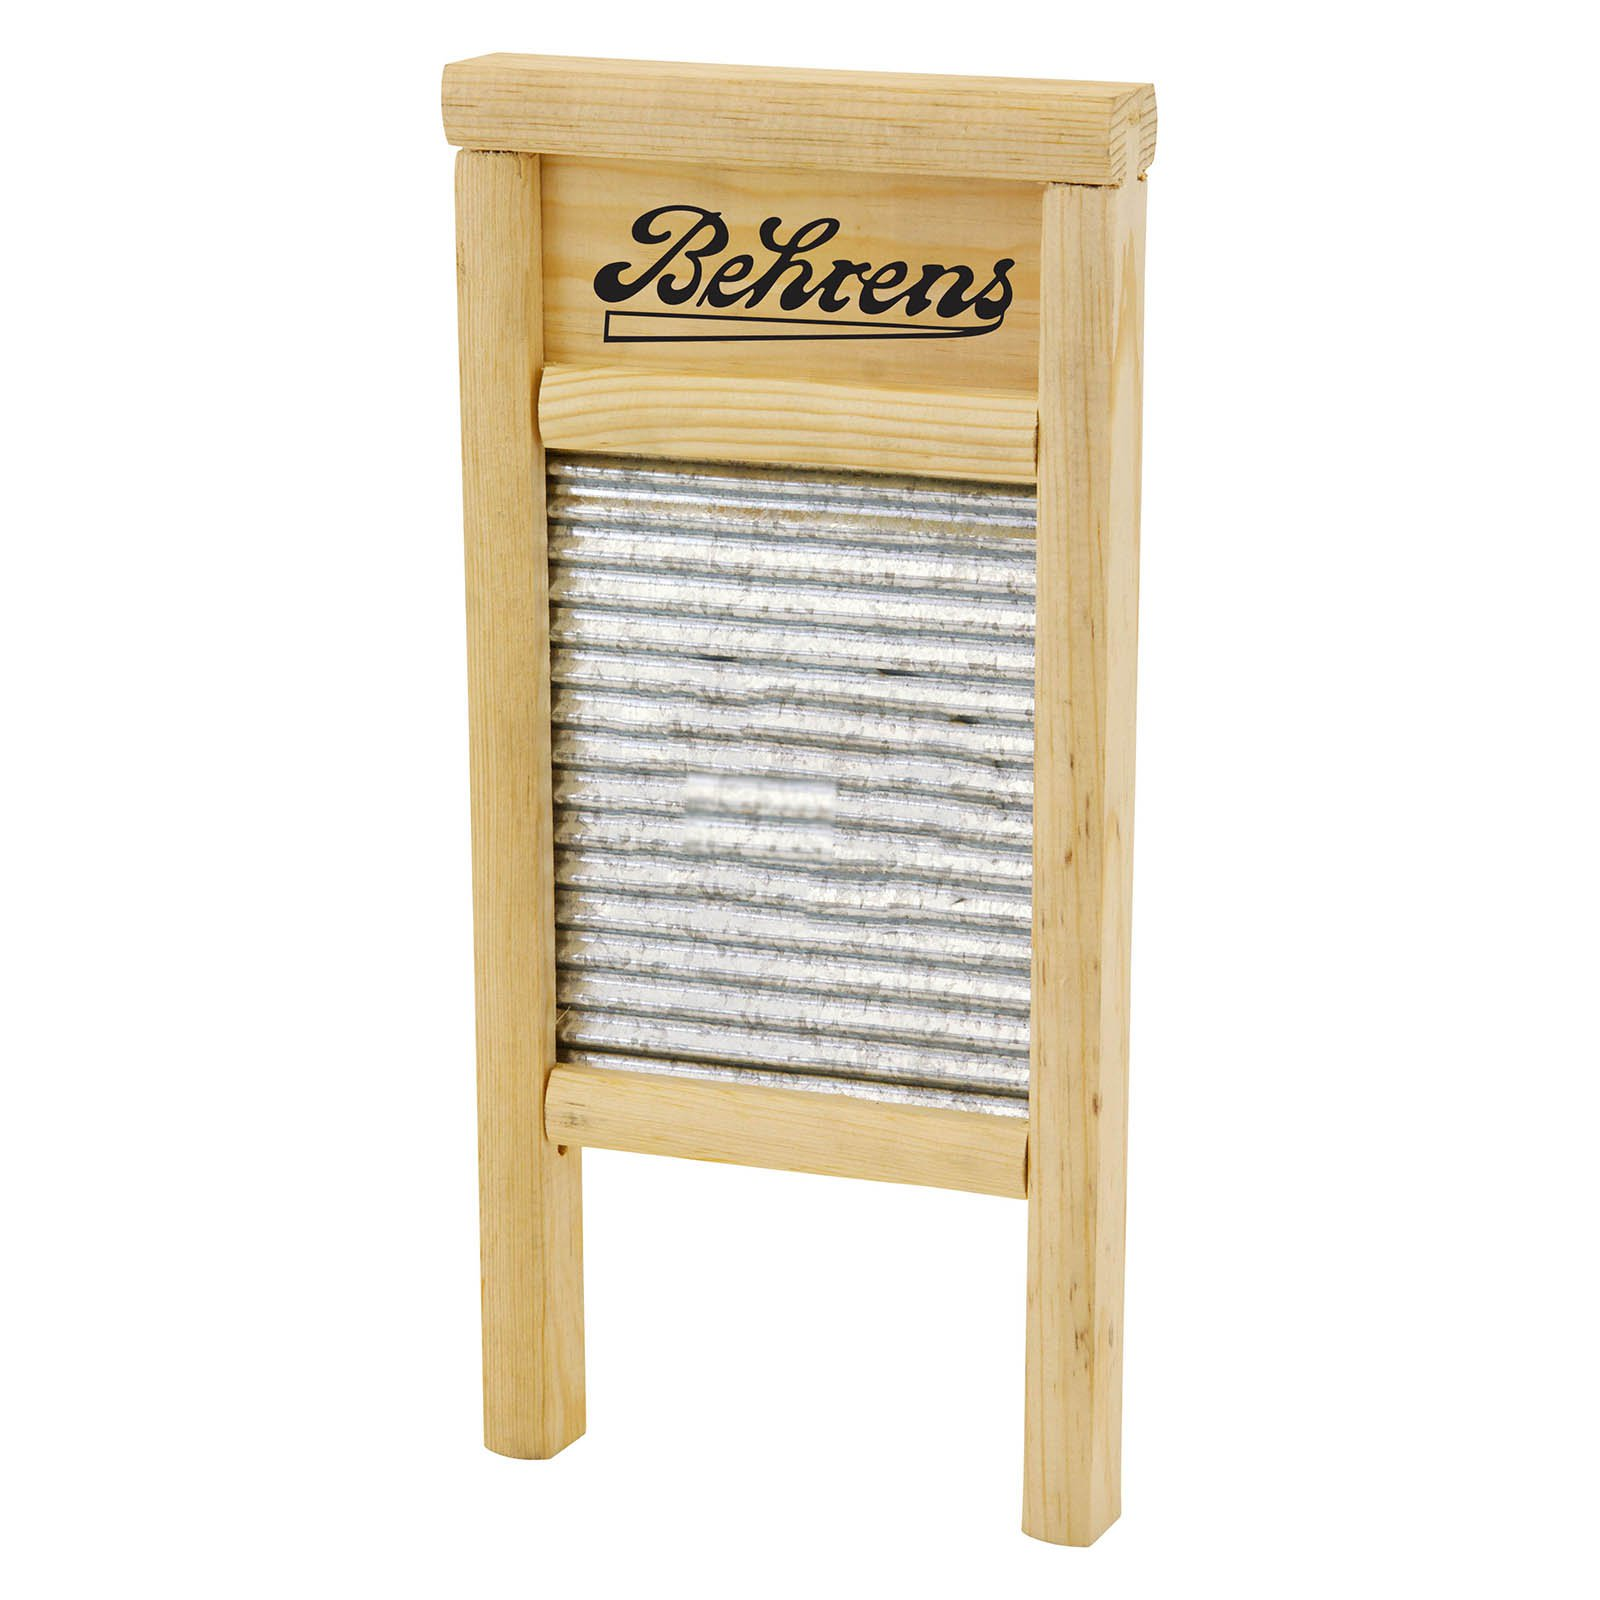 Behrens Galvanized Washboard